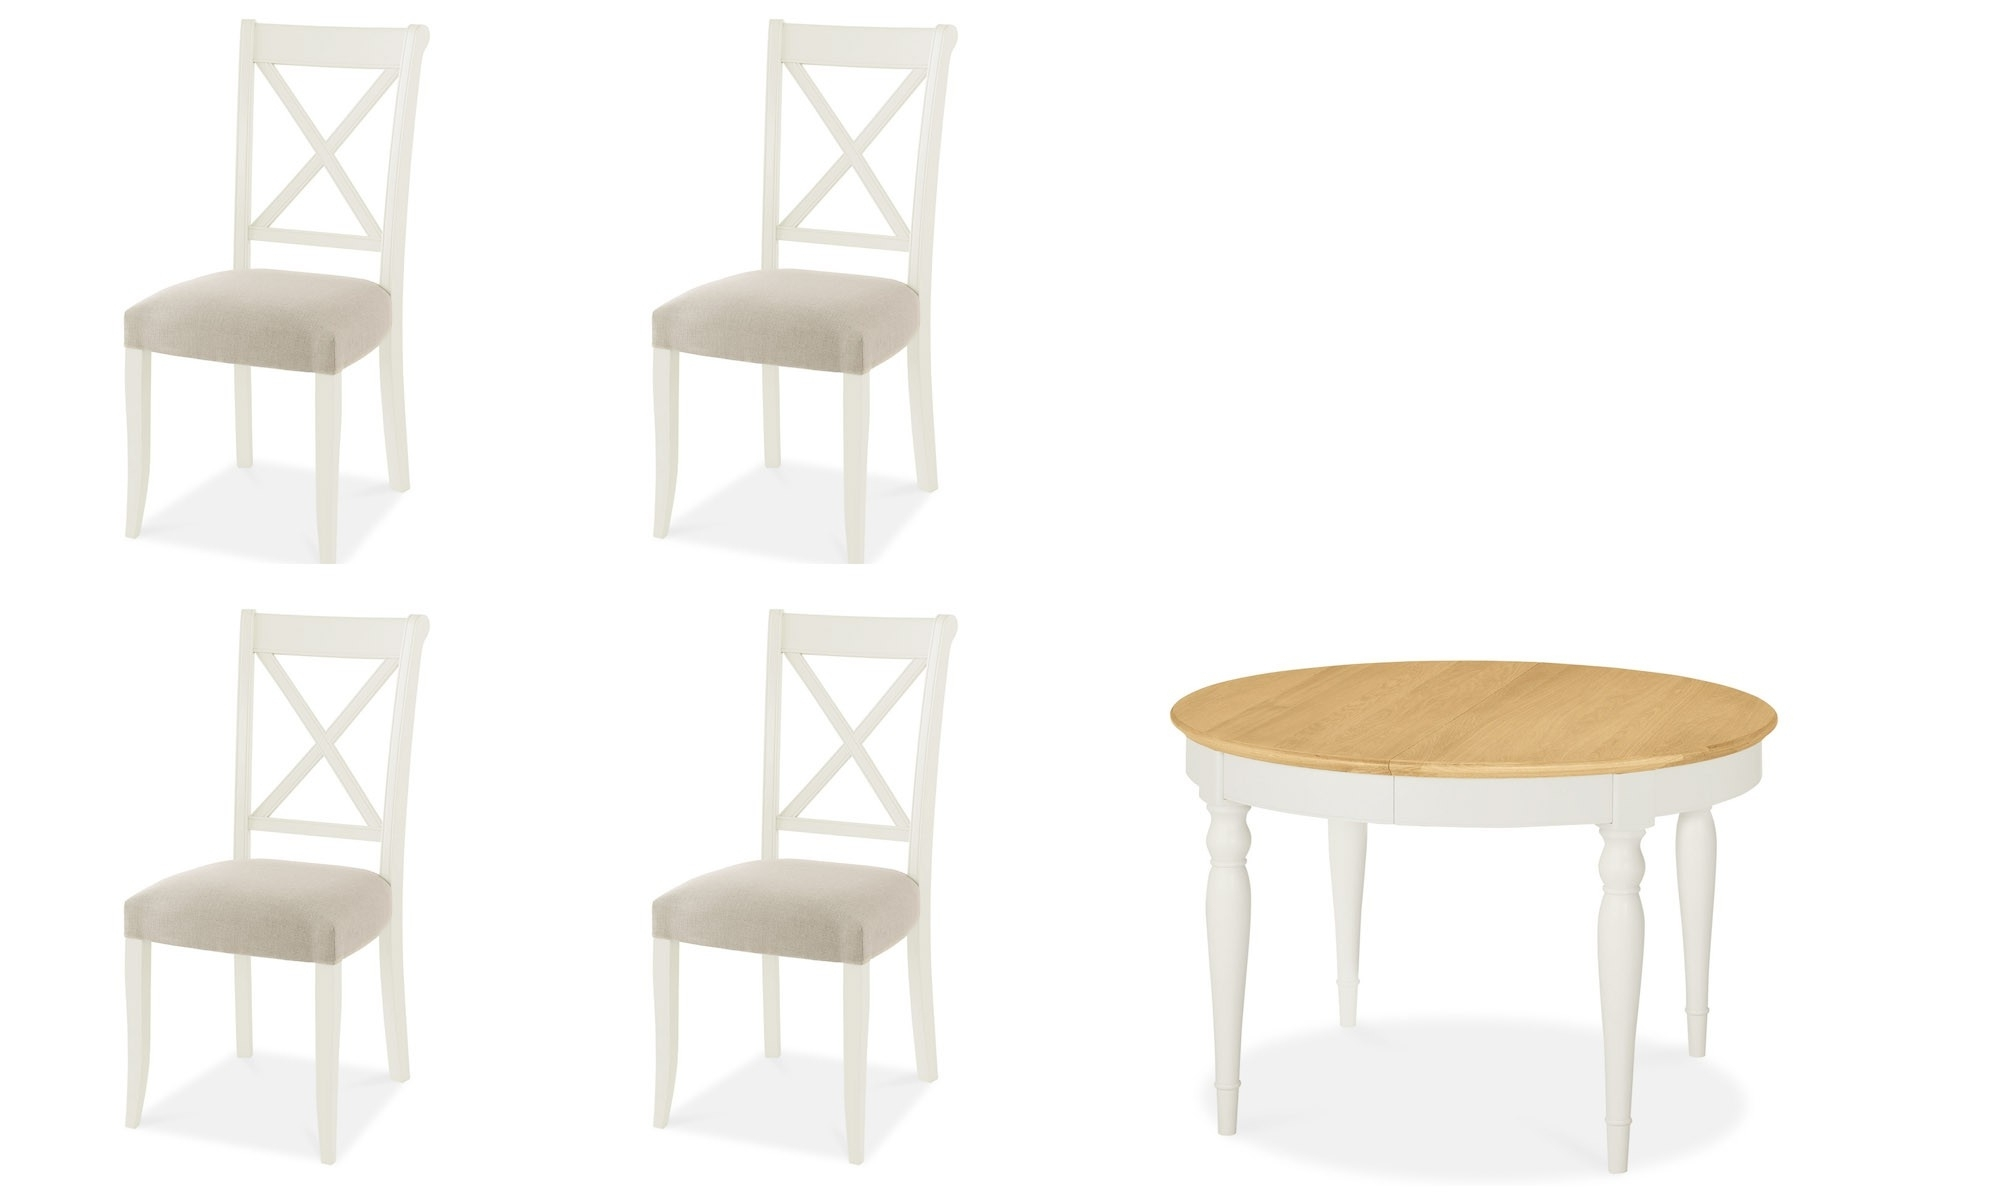 2018 Round Extending Dining Tables And Chairs Inside Georgie – Round Extending Dining Table And Chairs In Cream – Oak Top (View 1 of 25)